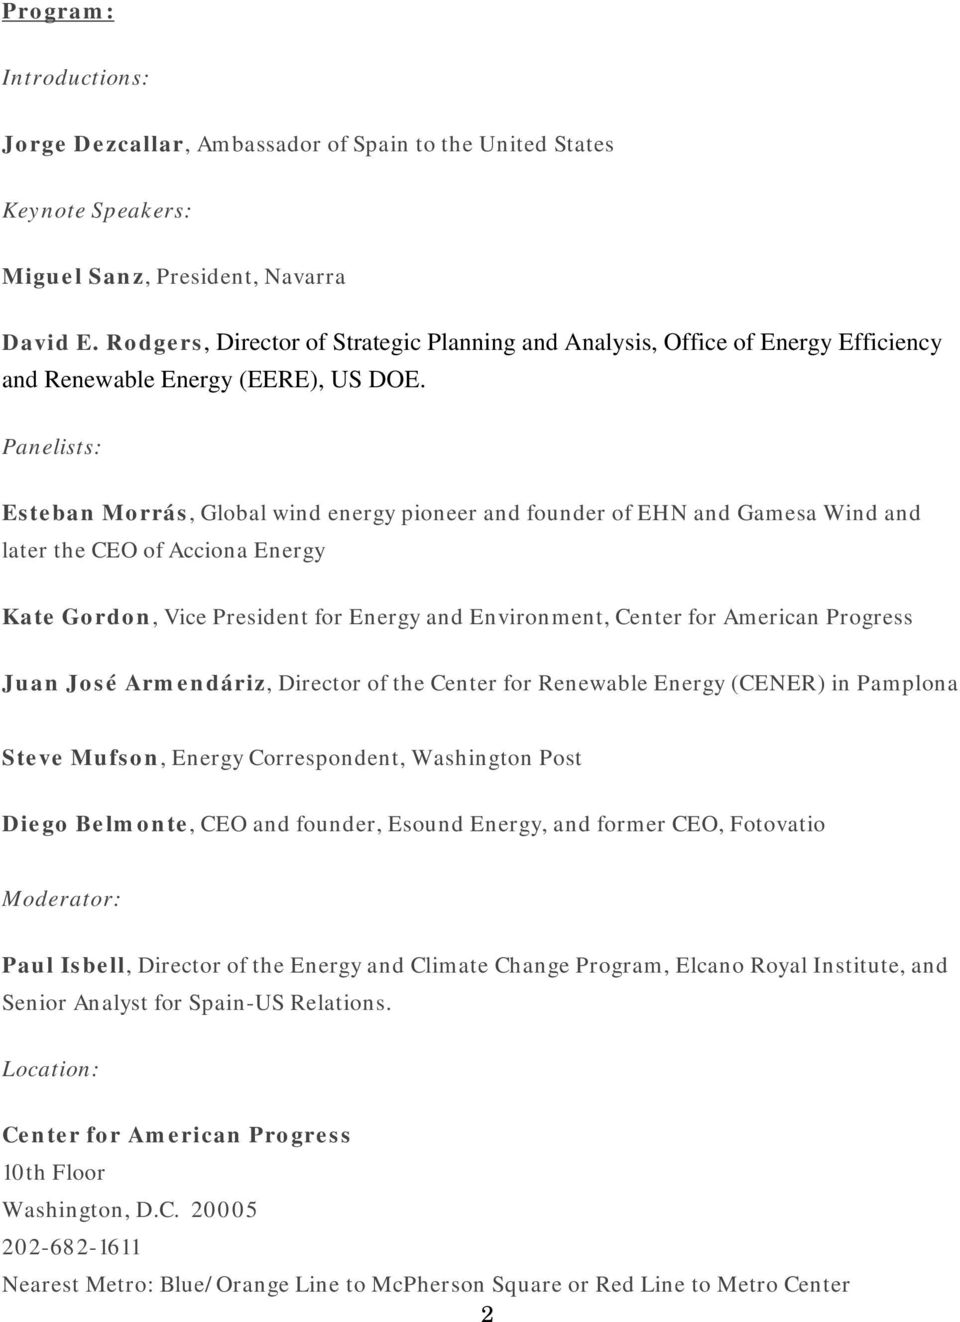 Panelists: Esteban Morrás, Global wind energy pioneer and founder of EHN and Gamesa Wind and later the CEO of Acciona Energy Kate Gordon, Vice President for Energy and Environment, Center for